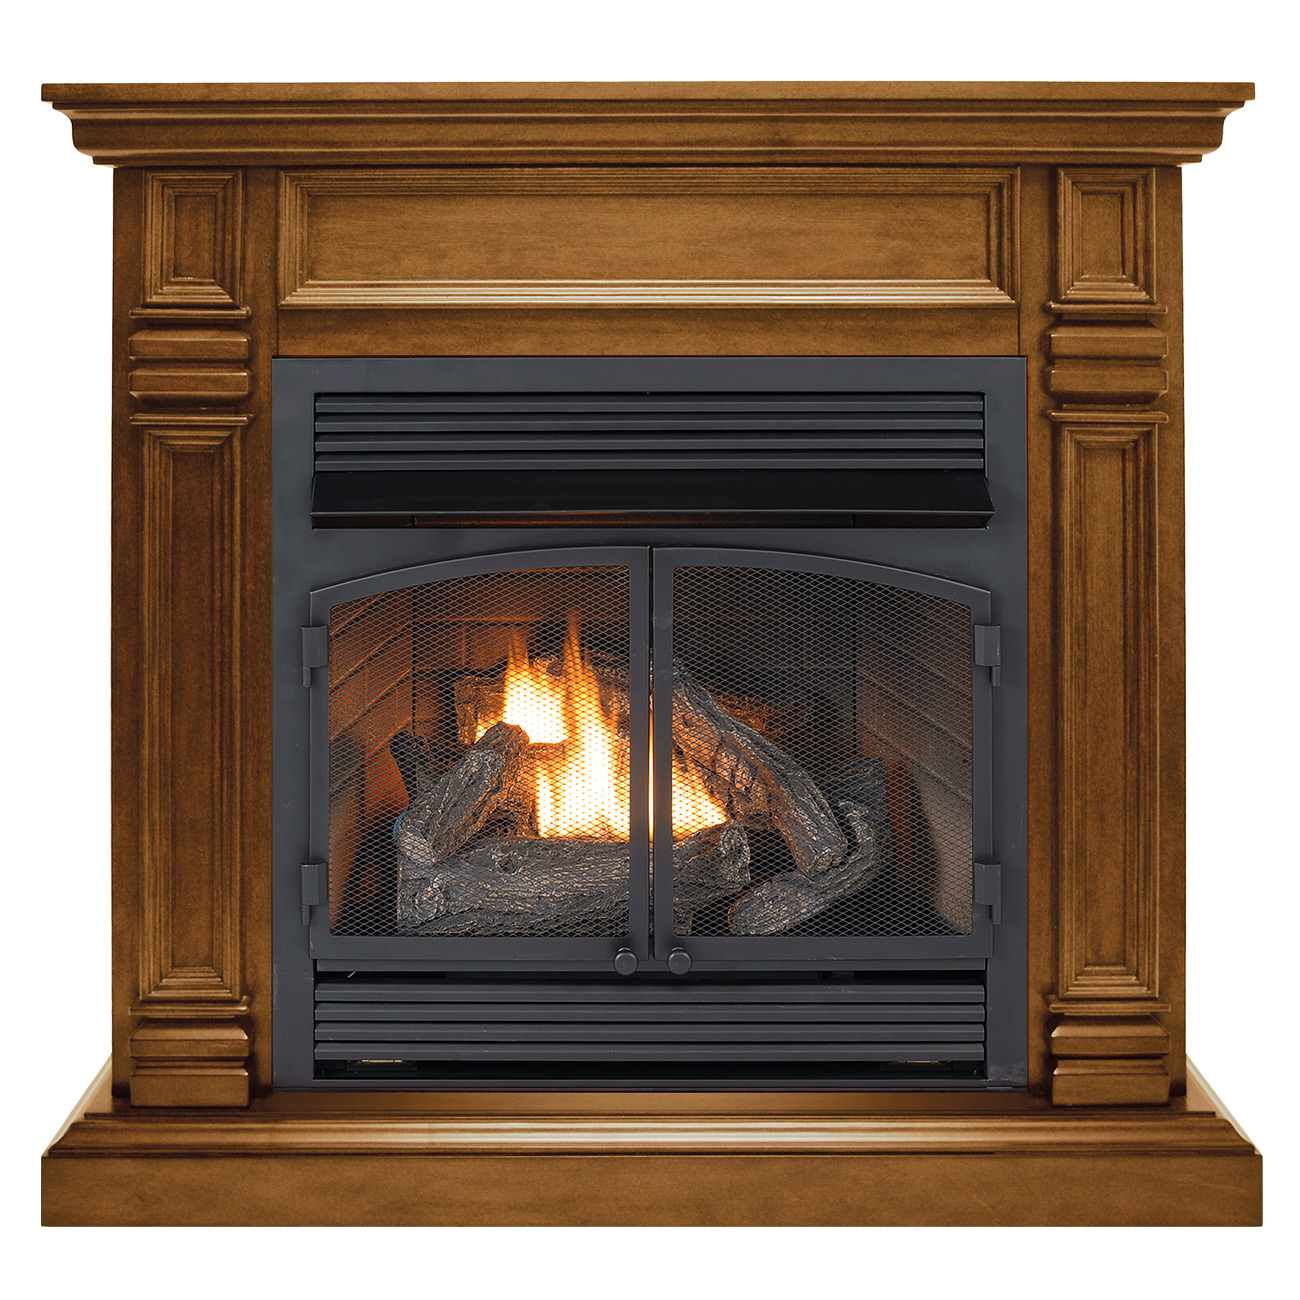 Ventless Fireplace System Dual Fuel Technology Apple Spice Finish With Remote 32 000 Btu